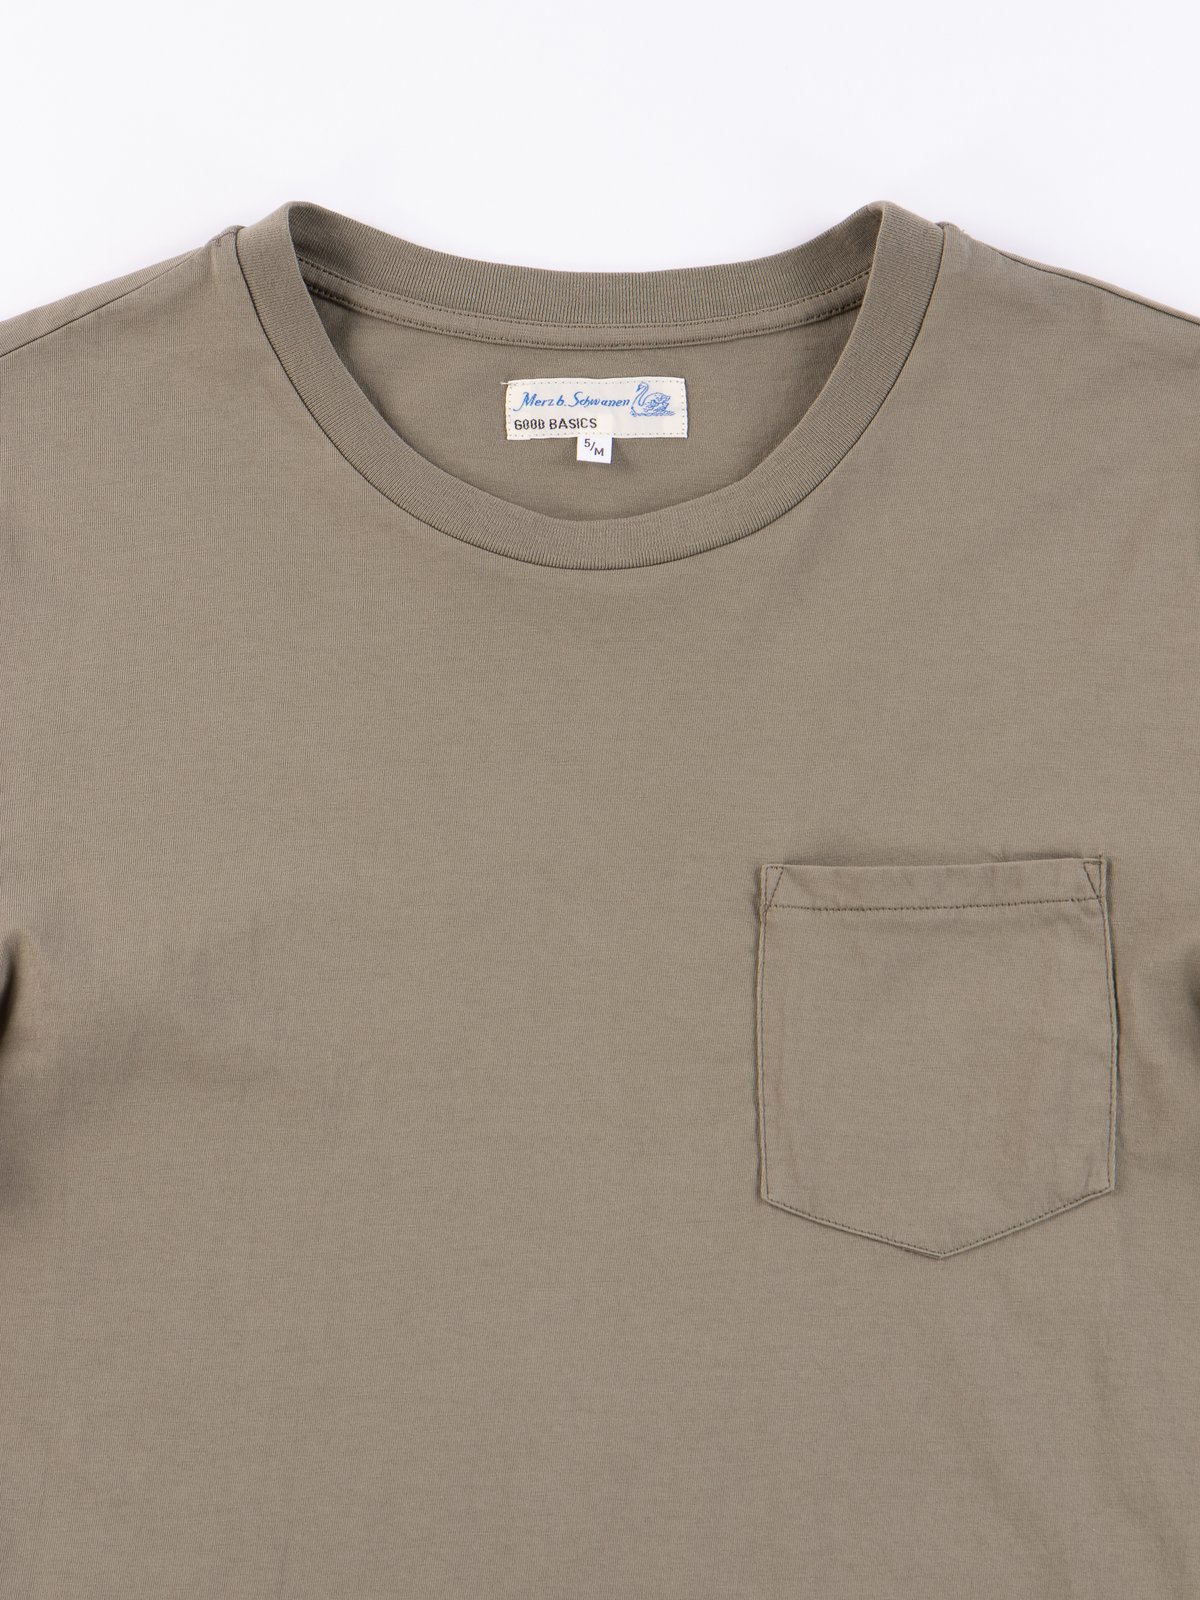 Army Good Basics CTP01 Pocket Crew Neck Tee - Image 3